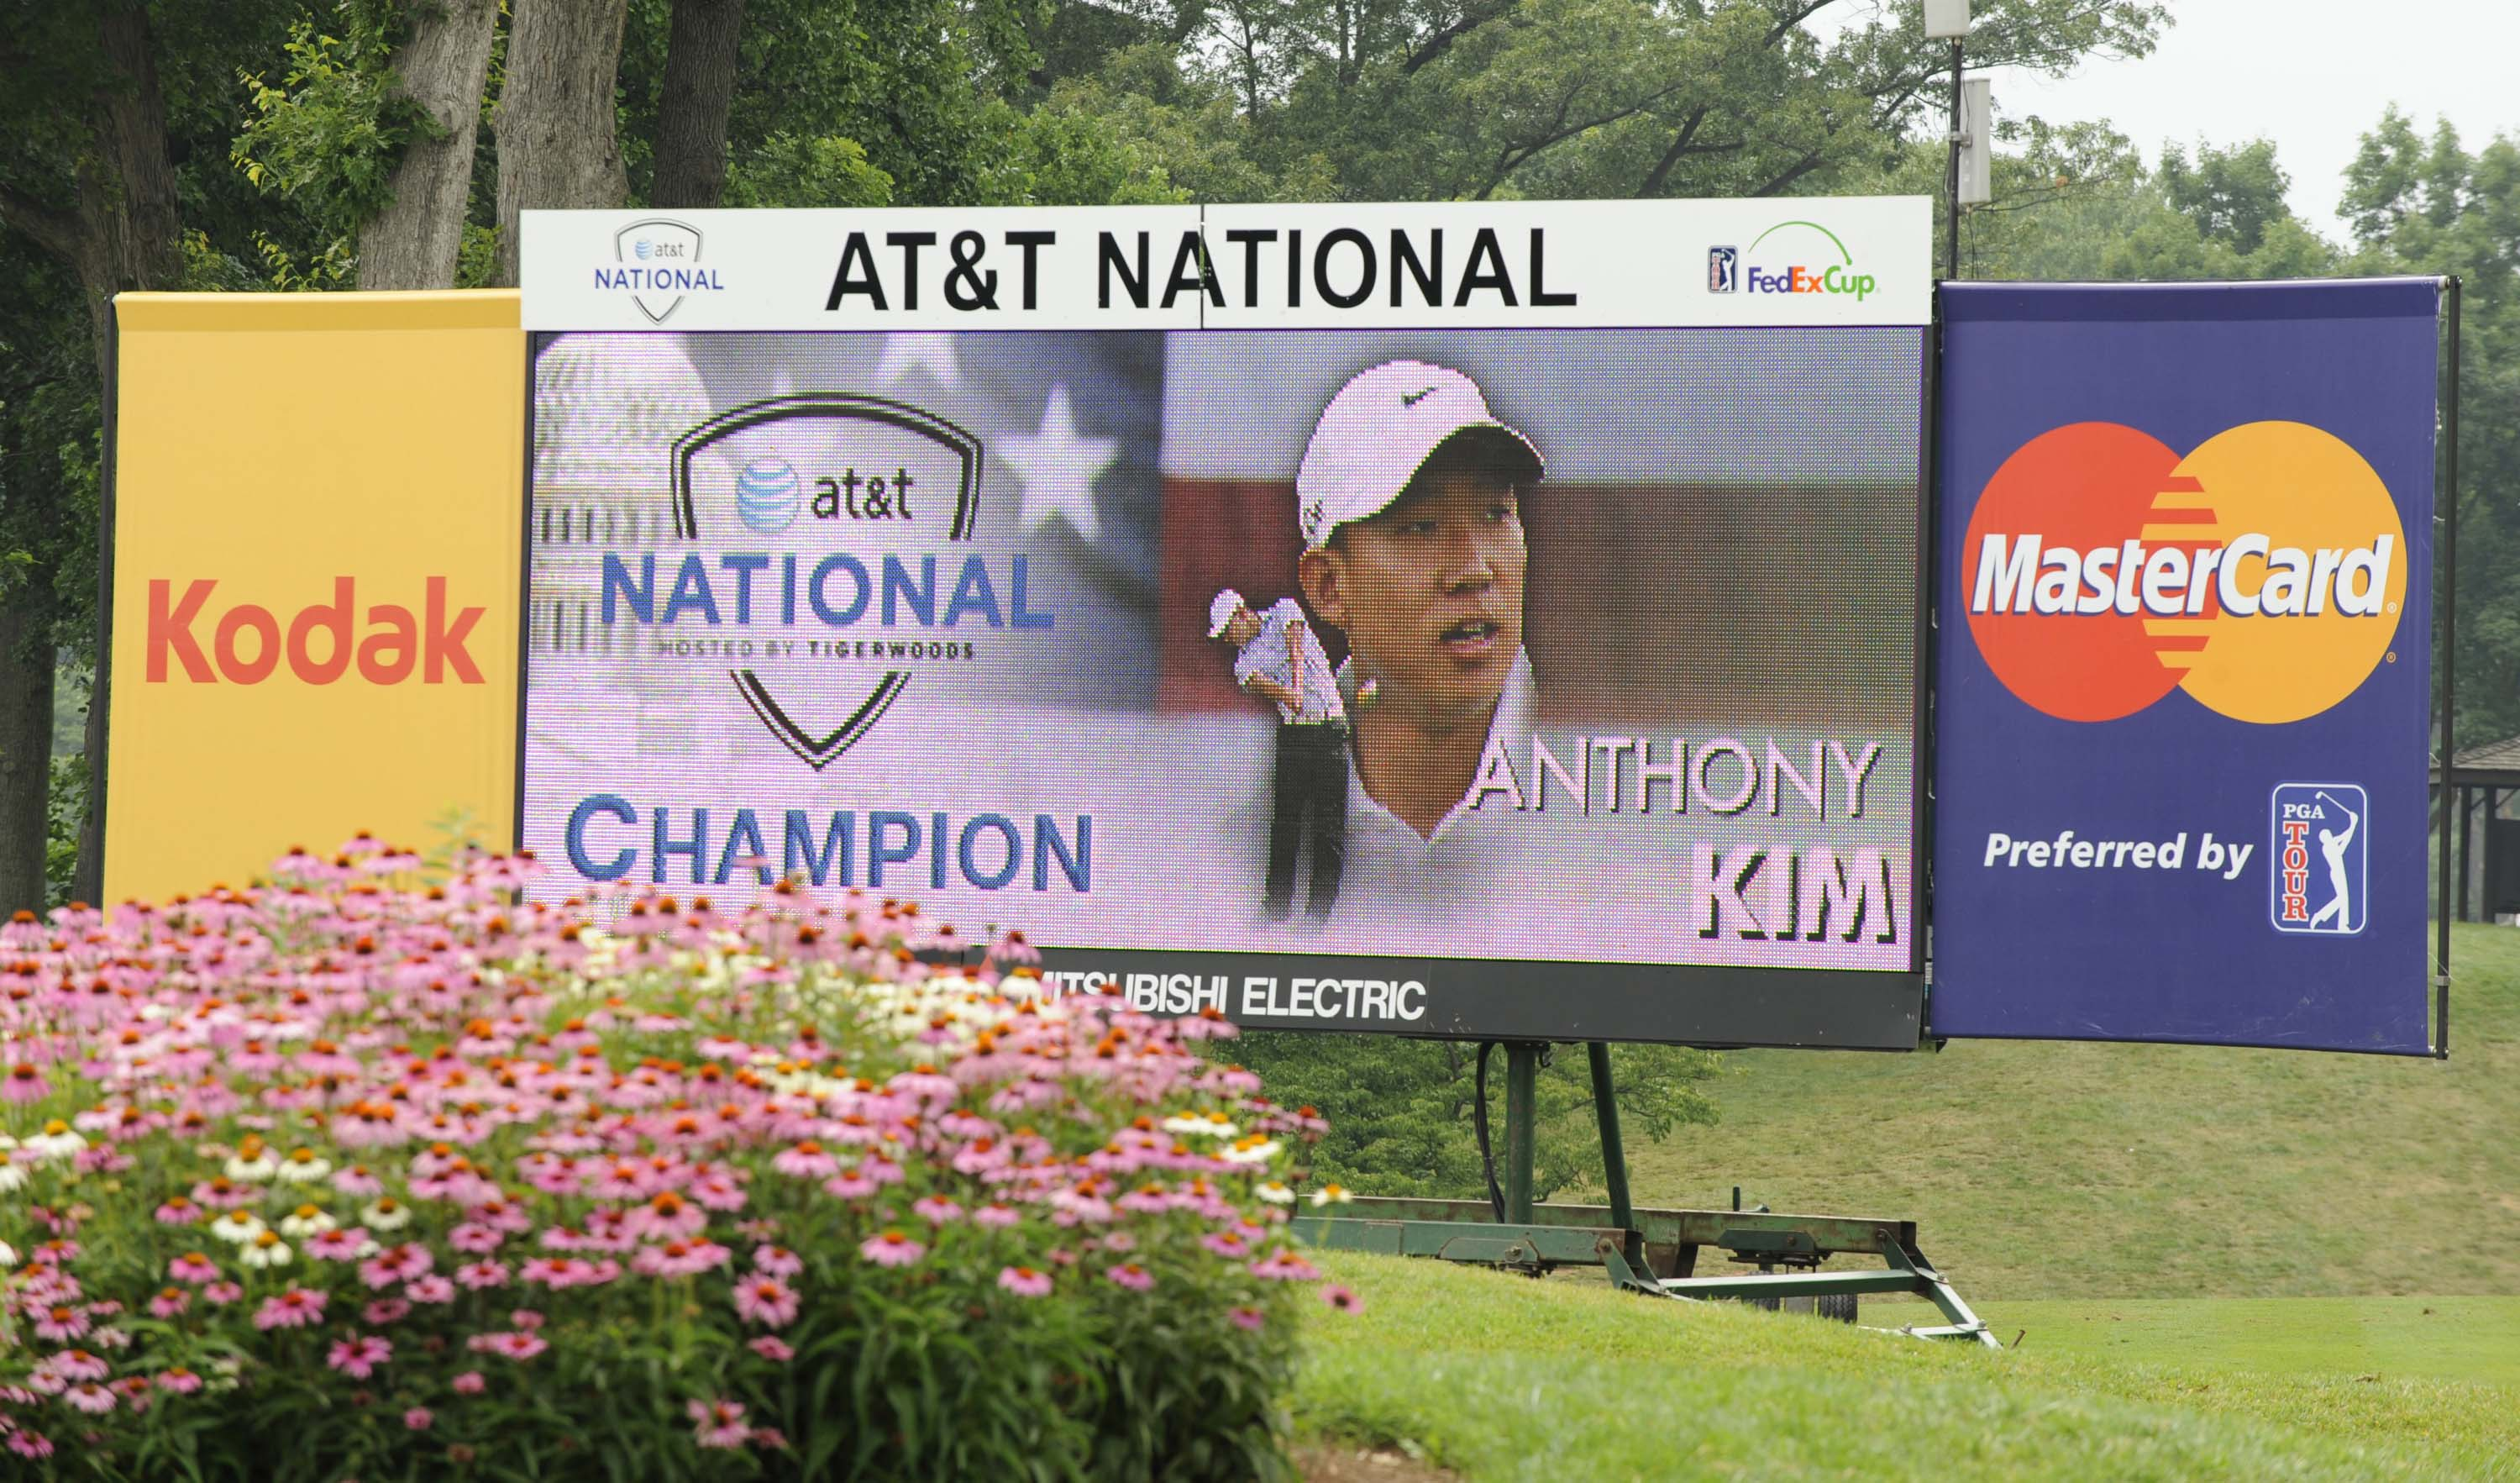 2. 2008: Anthony Kim wins